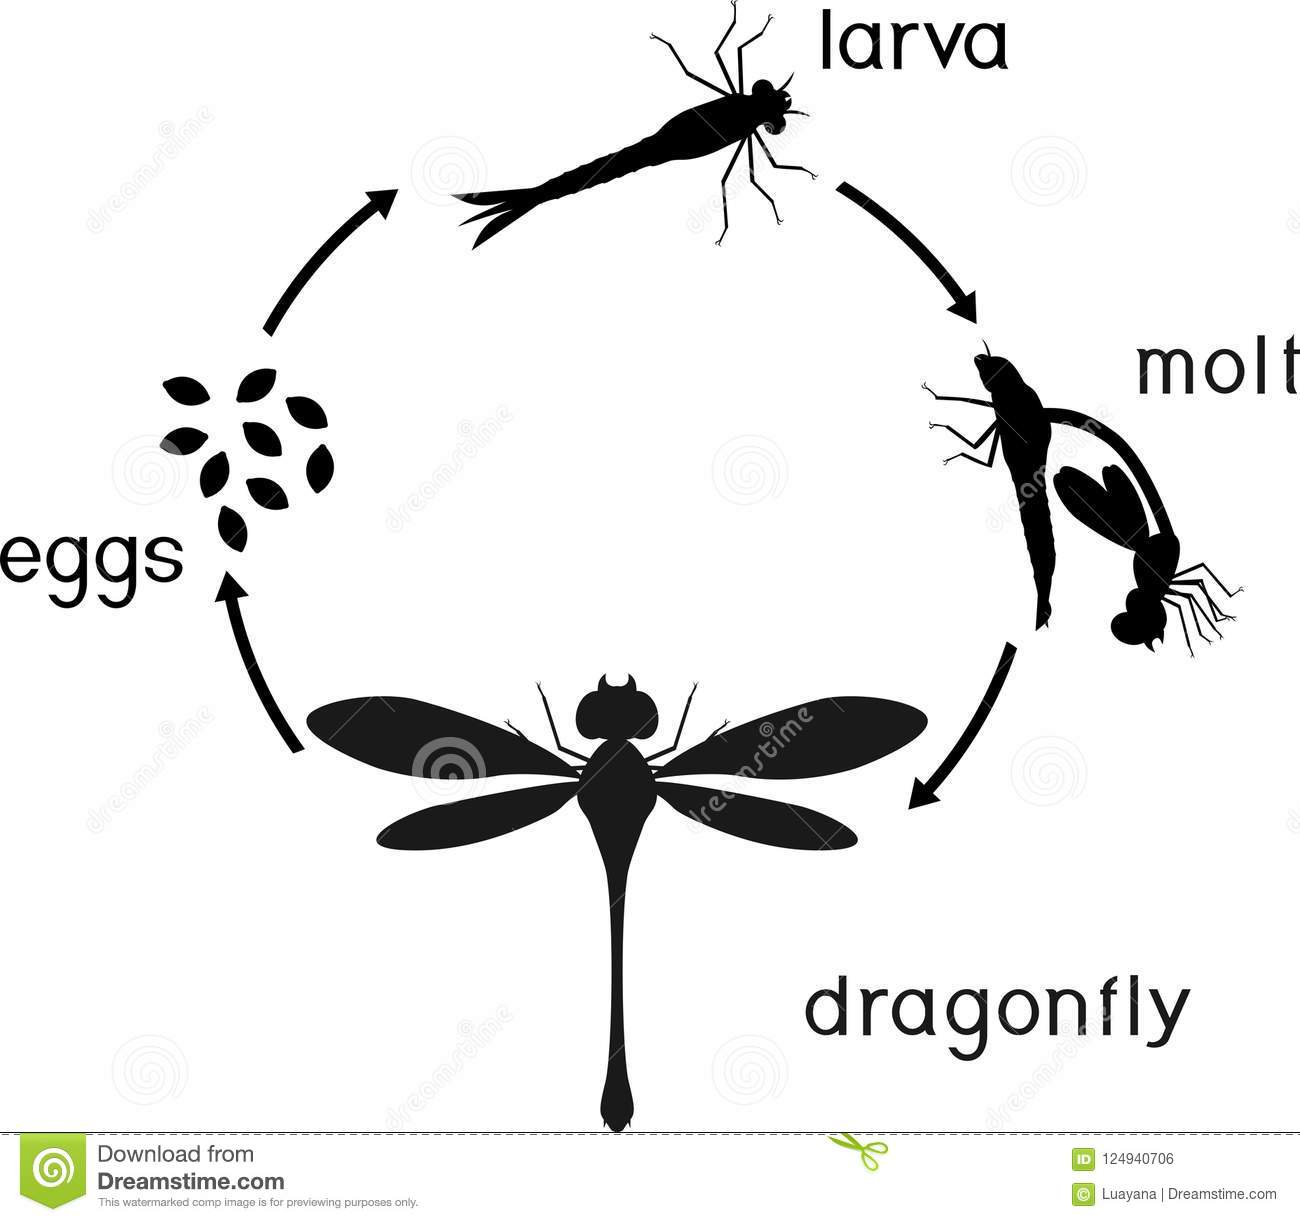 Life Cycle Of Dragonfly Sequence Of Stages Of Development